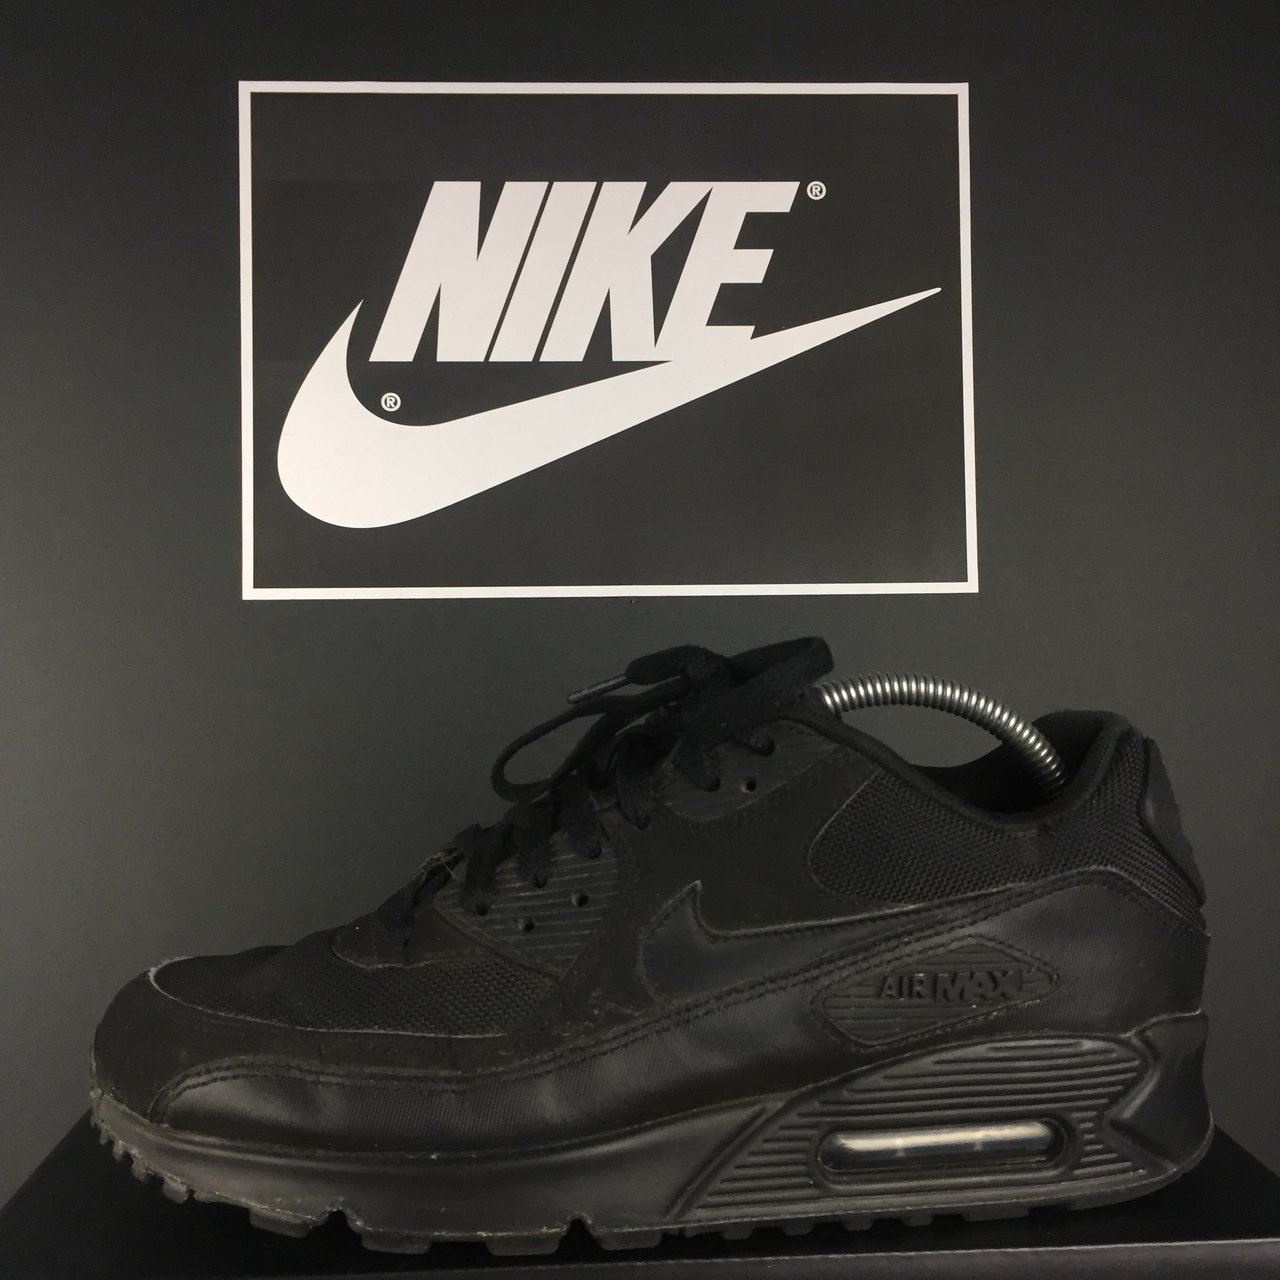 factory price b4643 bbaff ogarms. 10 months ago. Lewes, United Kingdom. Nike Air Max 90 Essential  Size 7 fit 7.5 U.K.